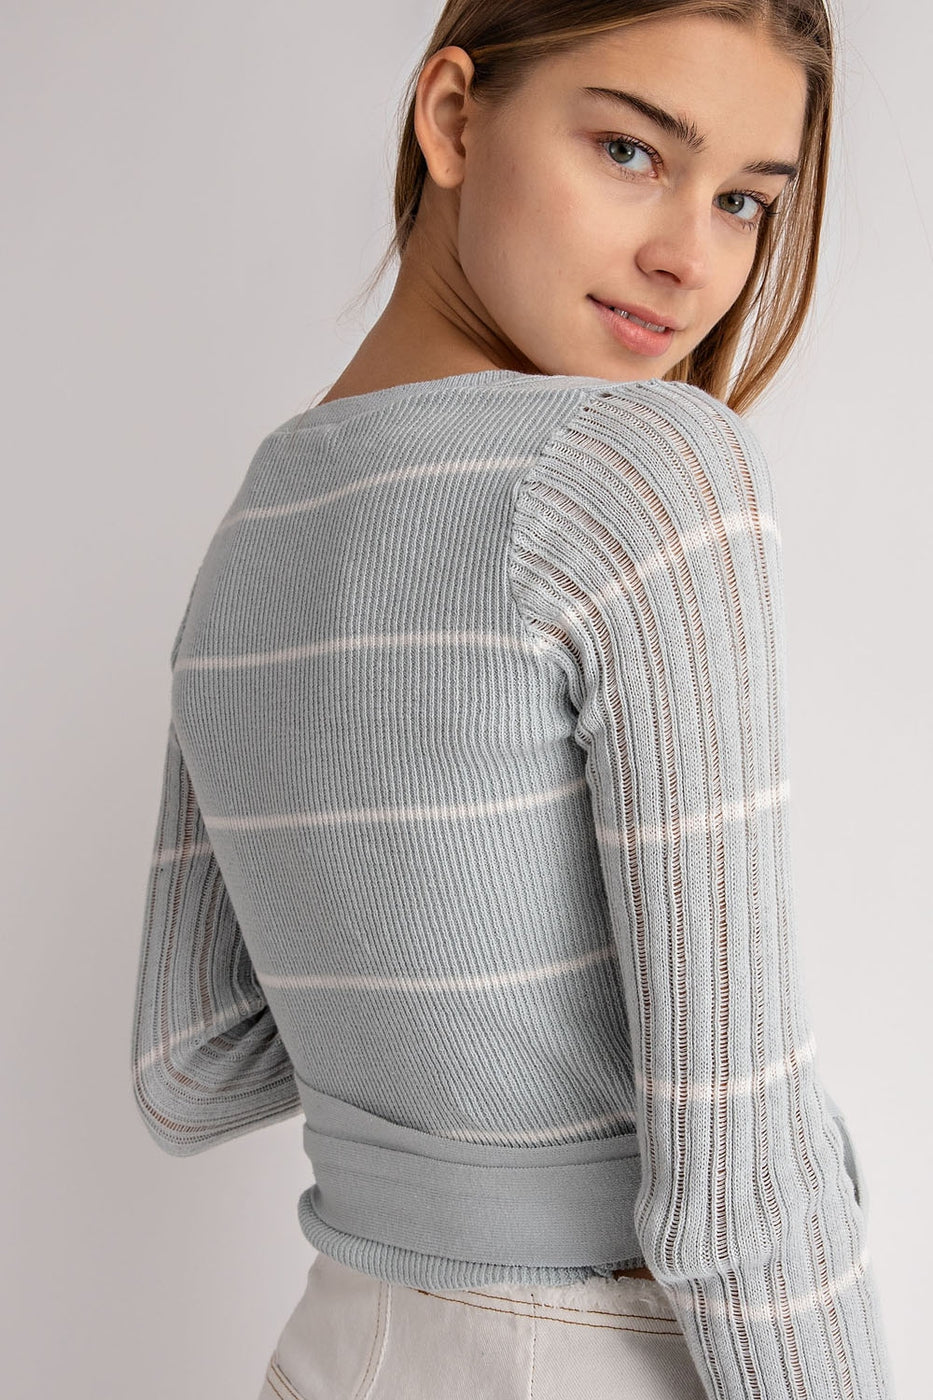 Lap Detail Sweater In Sky Blue Siin Bees